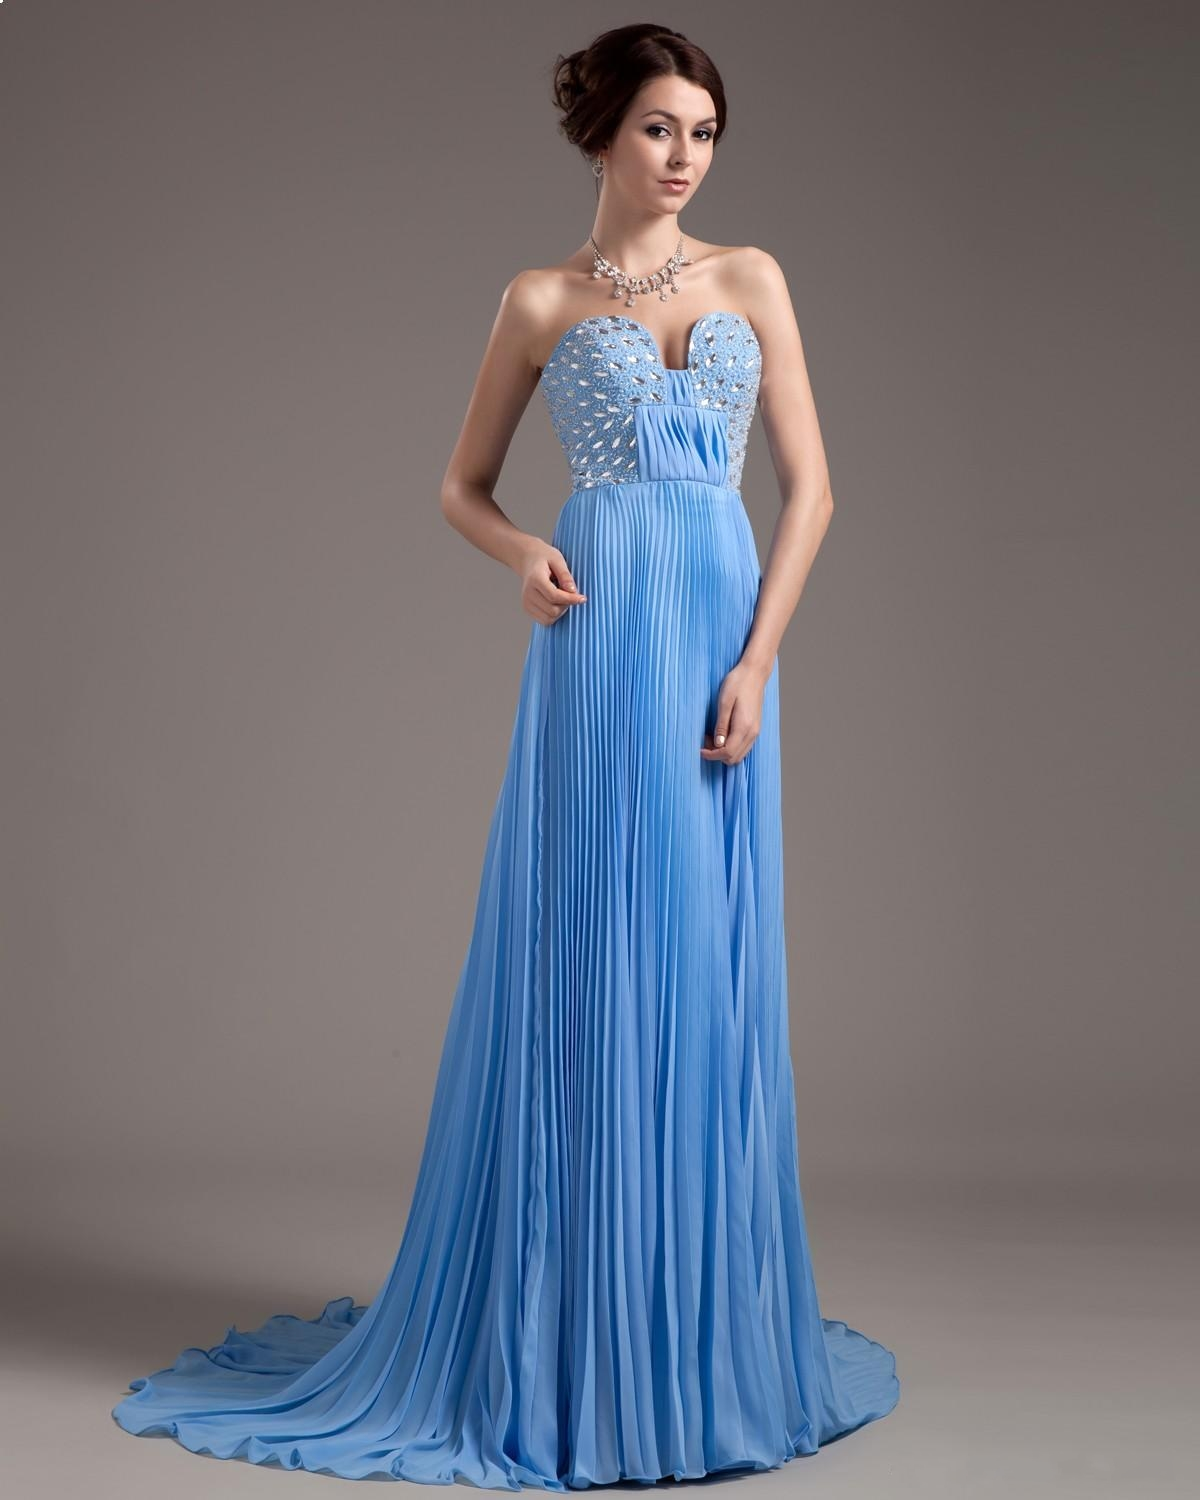 What Color Should Your Prom Dress Be